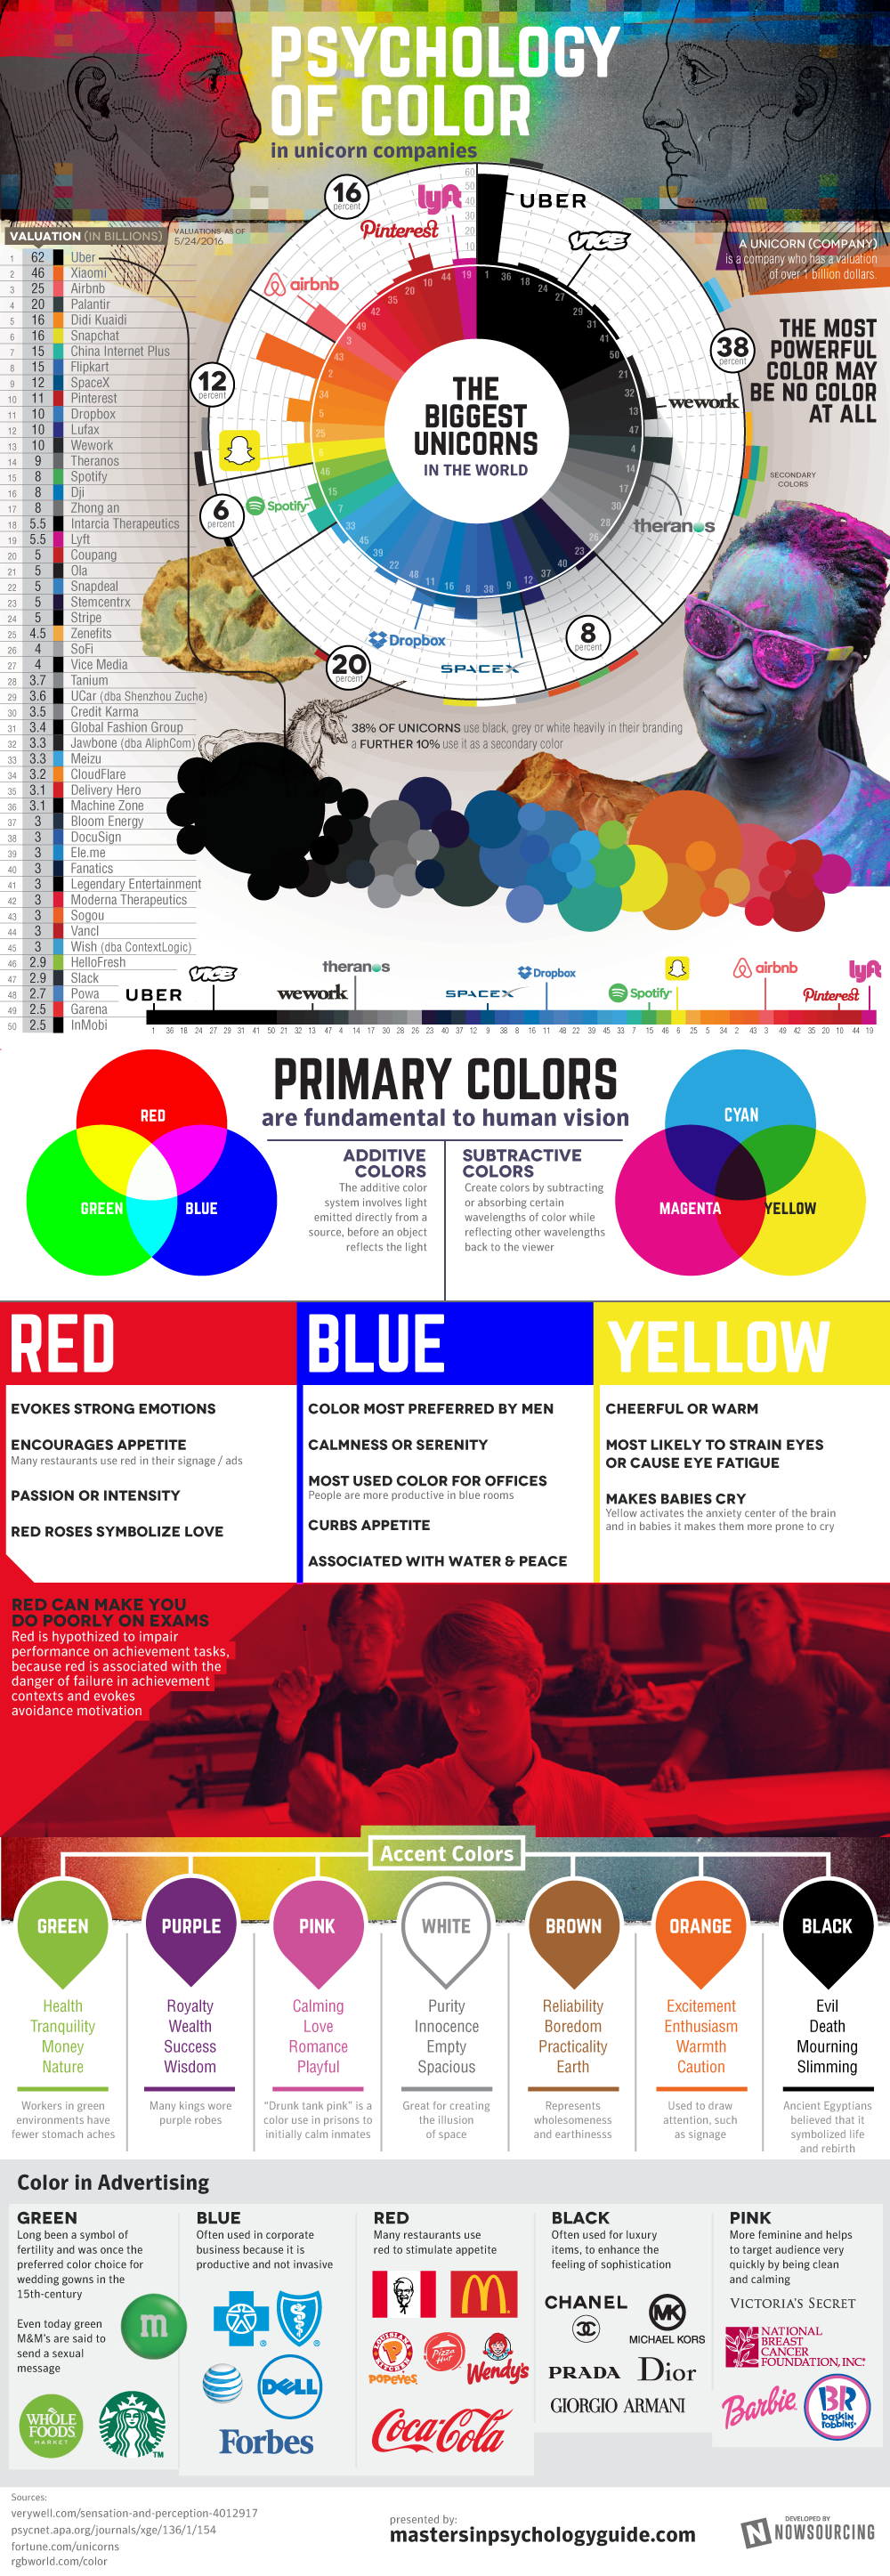 Psychology Of Color In Unicorn Companies